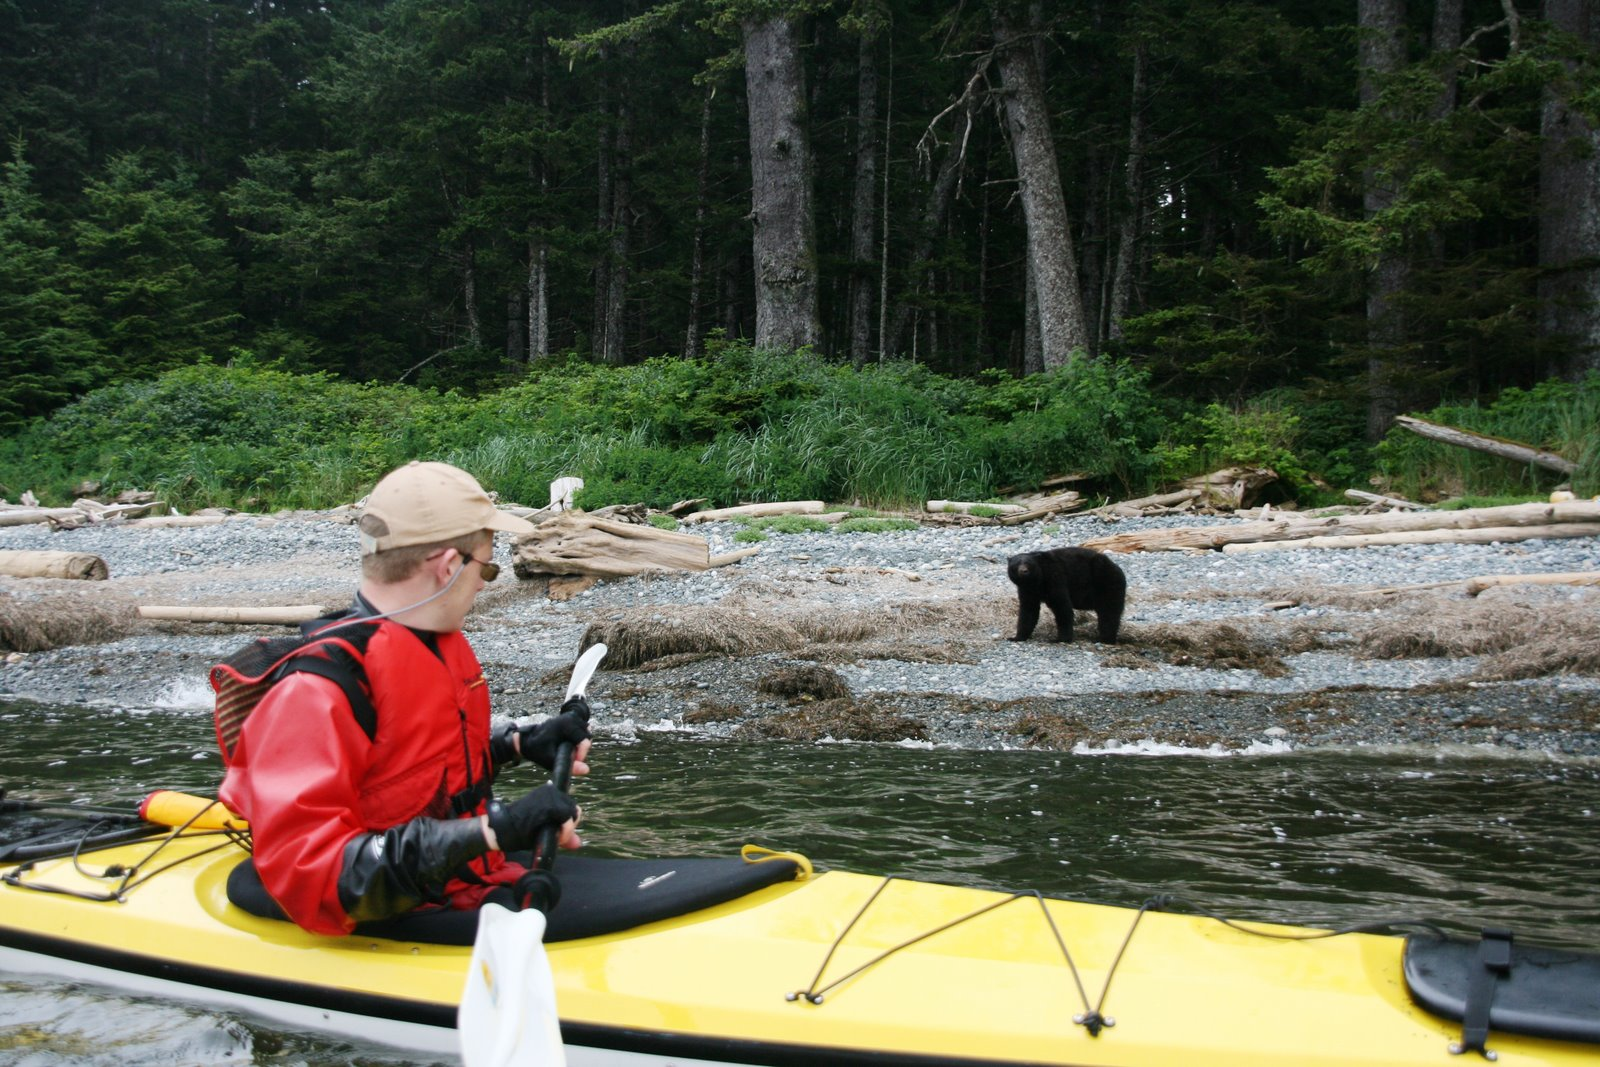 Vancouver Island 2007 Youth Scholarship Expedition, Black bear from the kayak - kayaking around Cape Scott